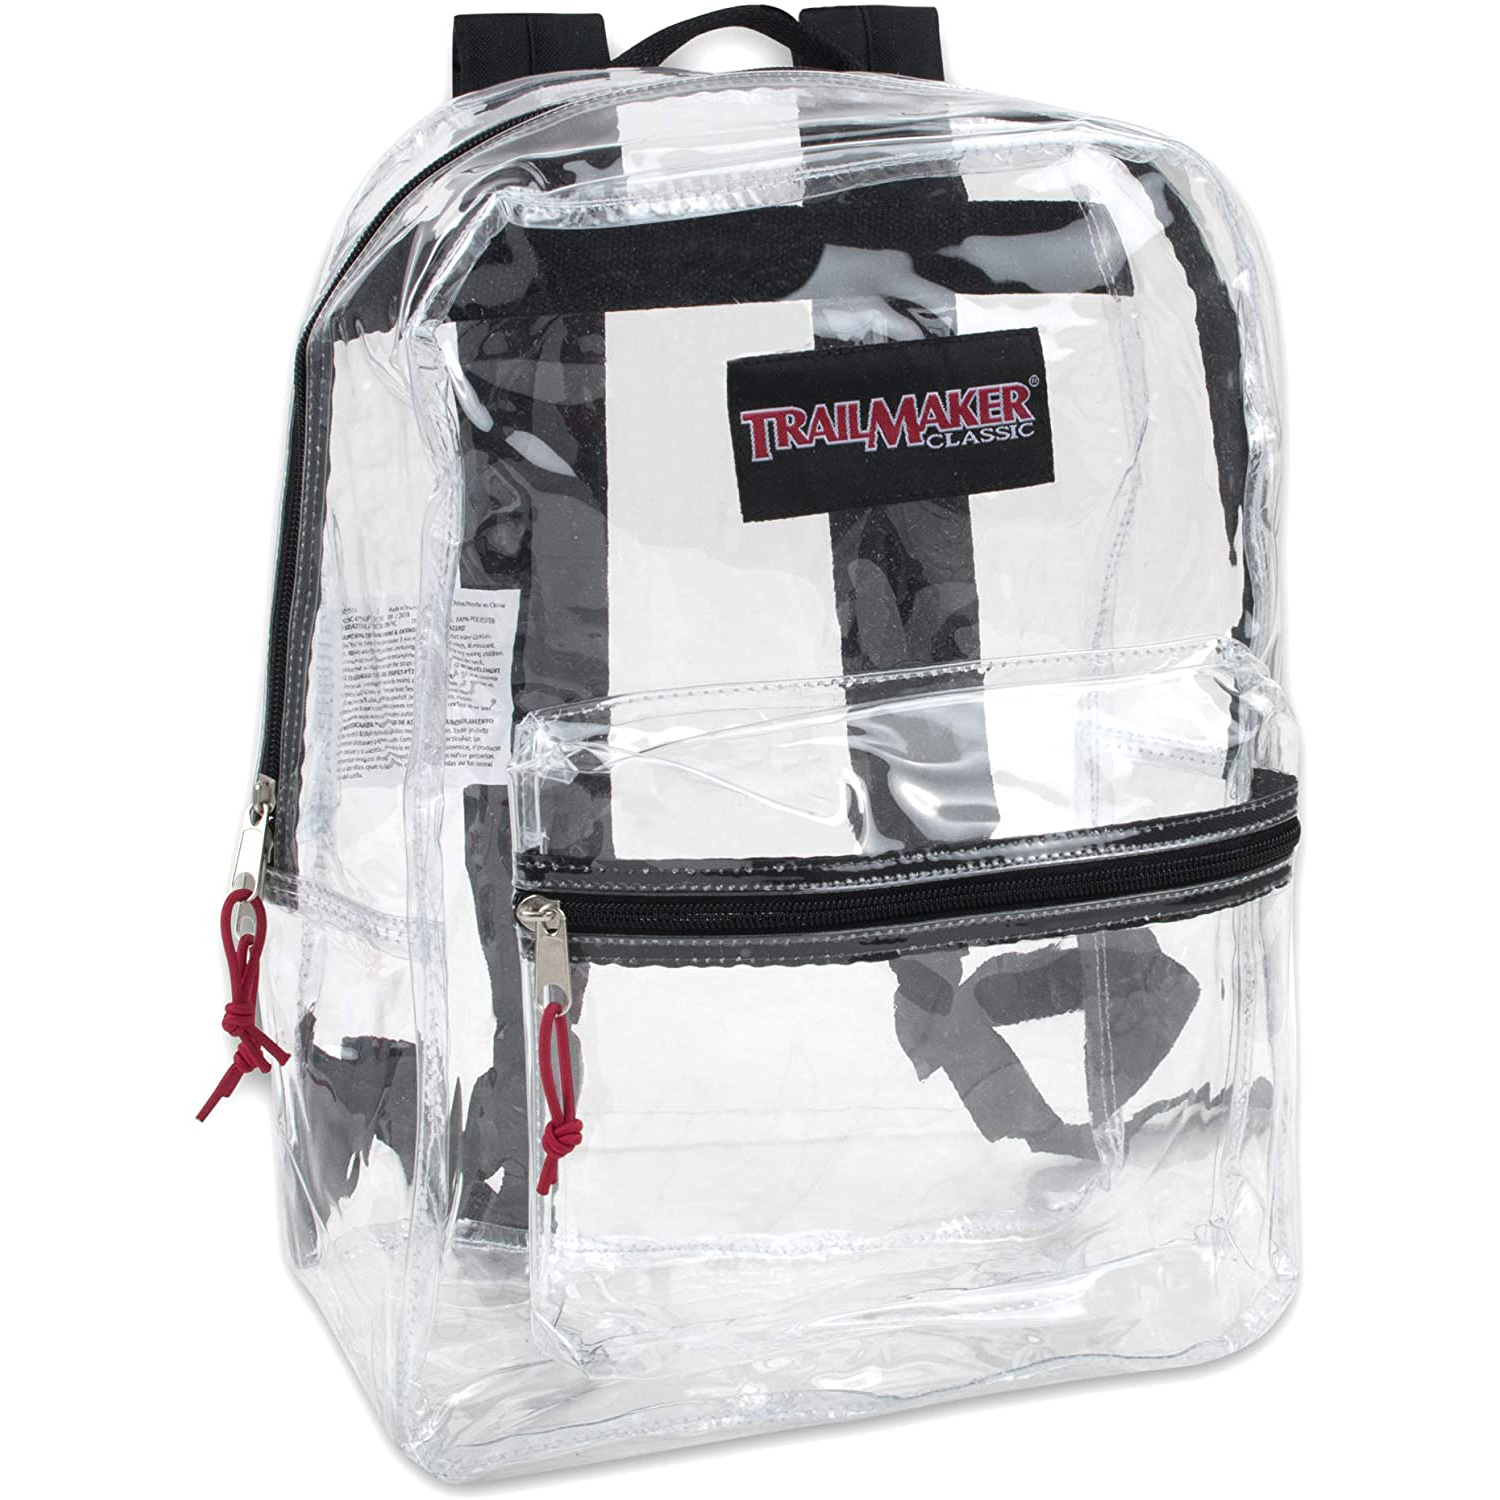 Clear Backpack With Reinforced Straps